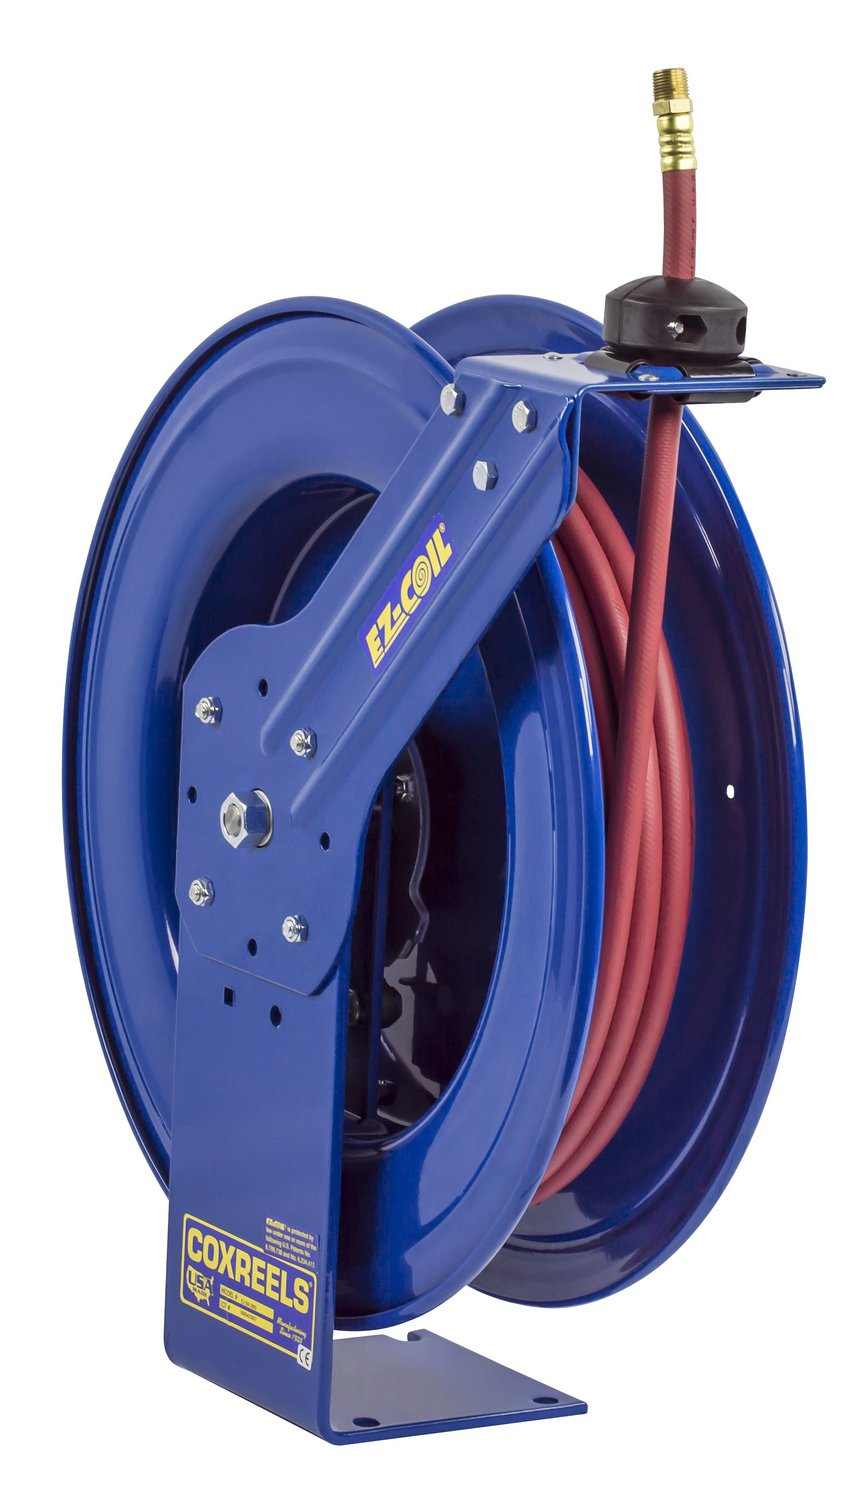 Coxreels EZ-SH-3100 Safety Series Spring Rewind Hose Reel for air/water: 3/8'' I.D., 100' hose, 300 PSI